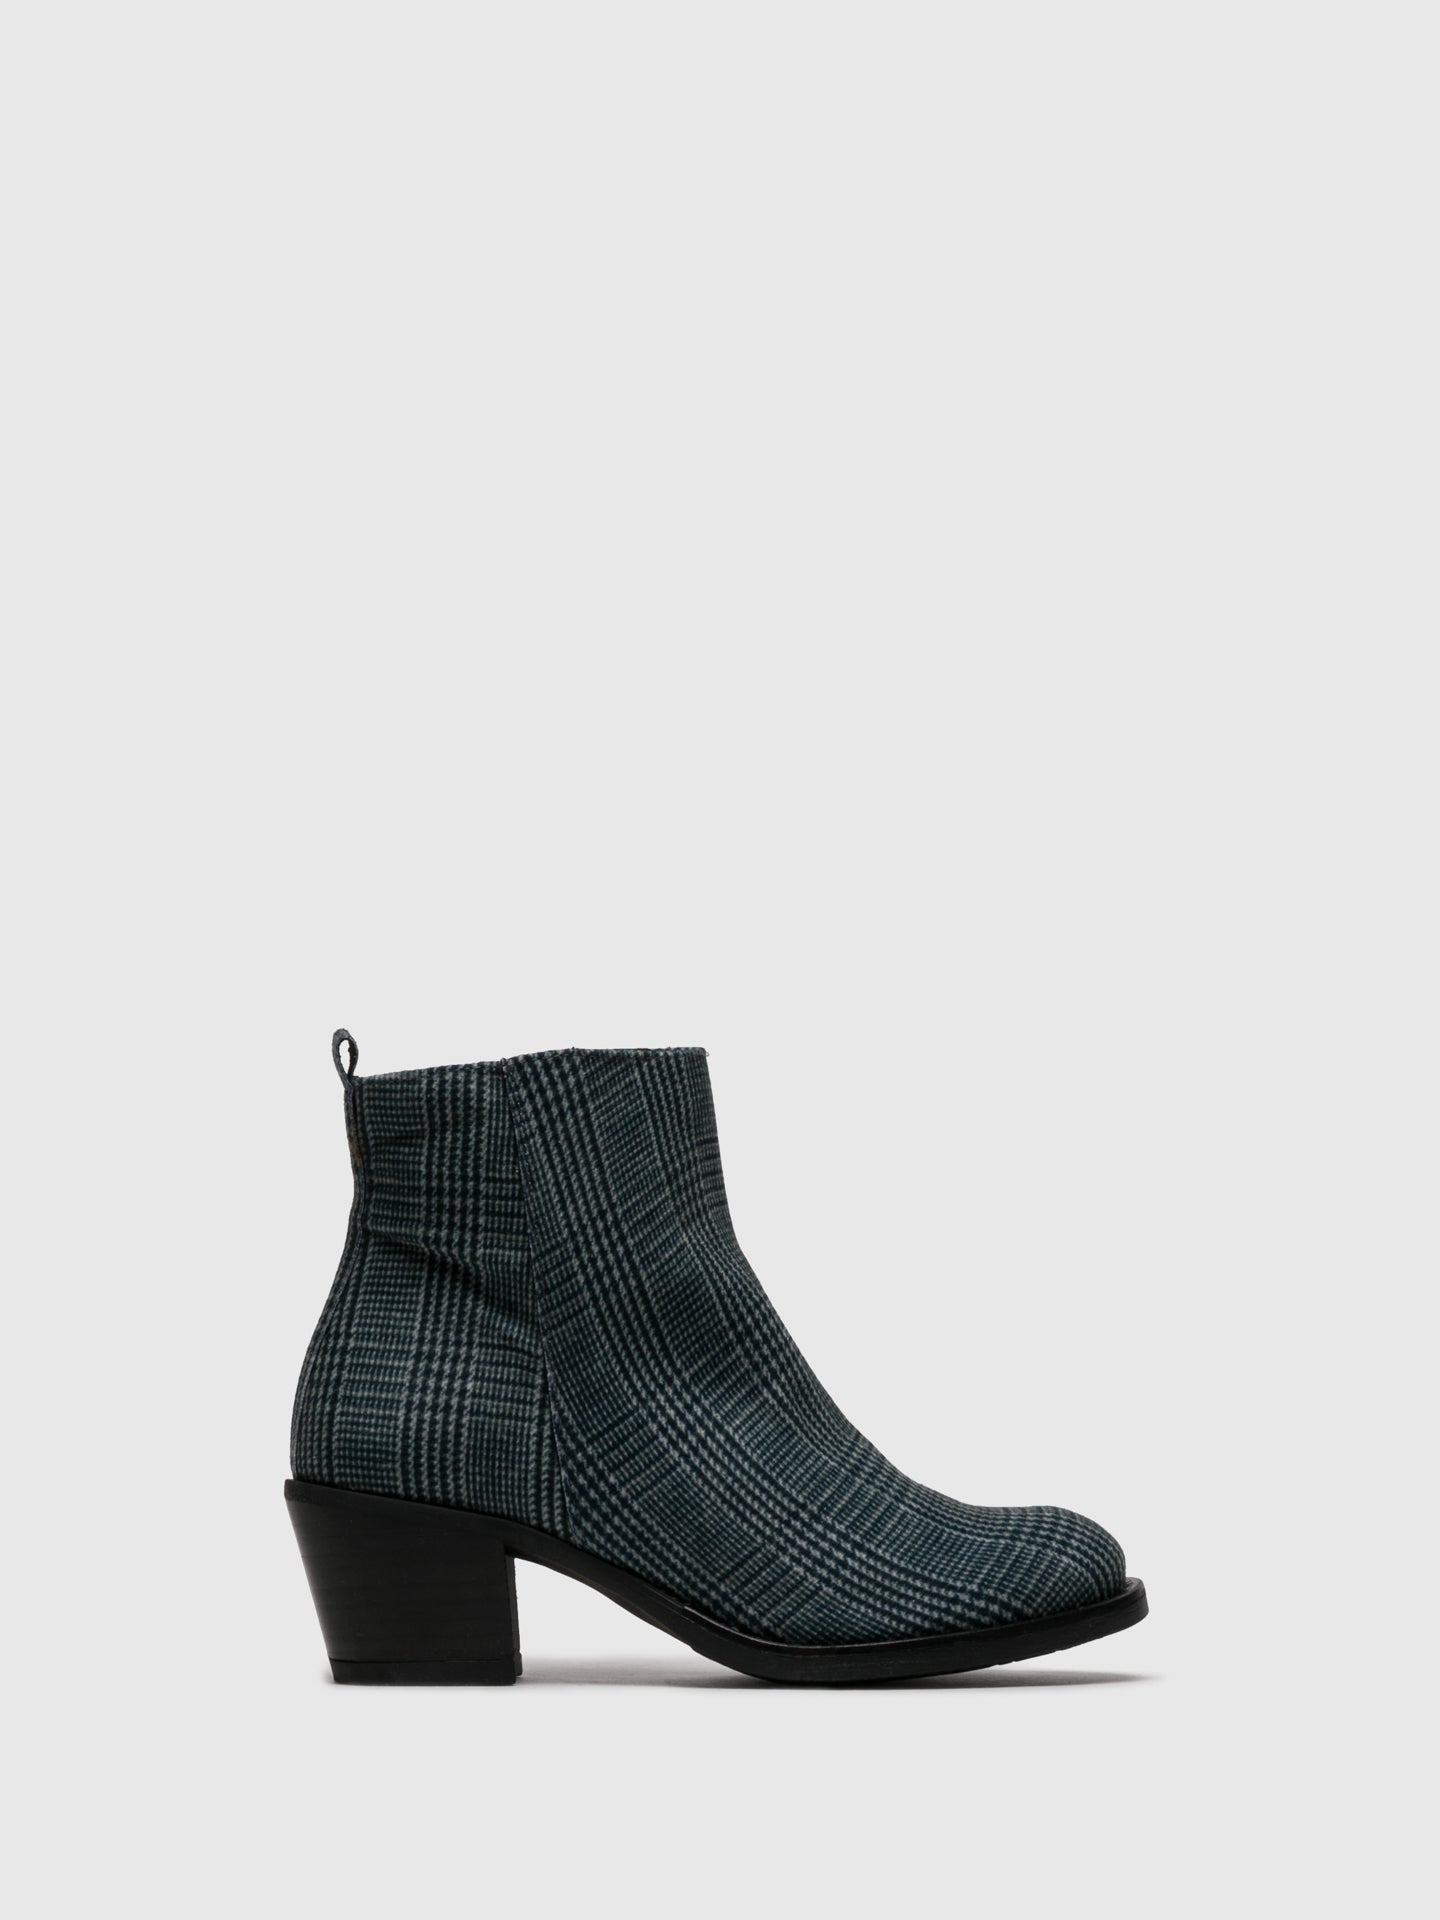 Sotoalto Multicolor Zip Up Ankle Boots